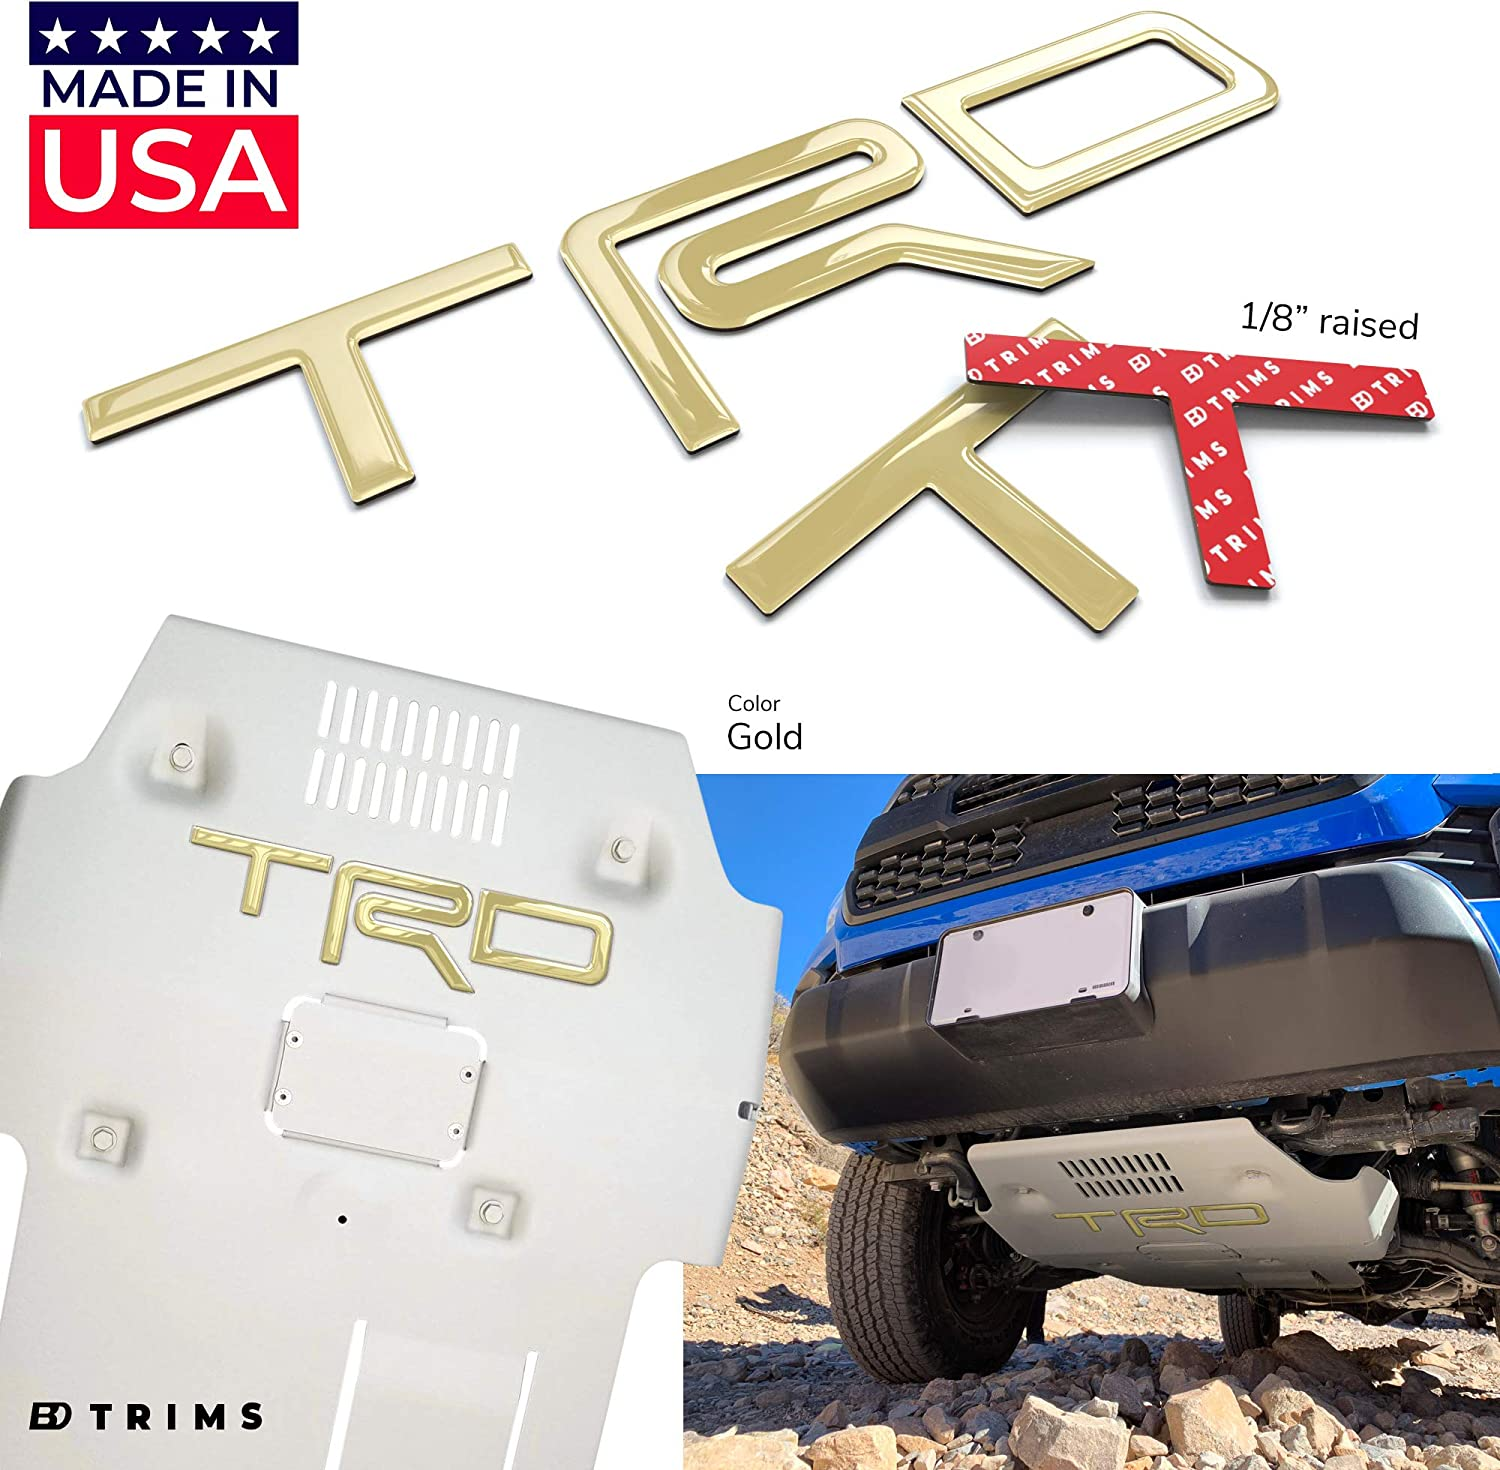 SF Sales USA Gold Chrome Letters fit Tundra 2014-2019 Rear Tailgate Inserts Not Decals